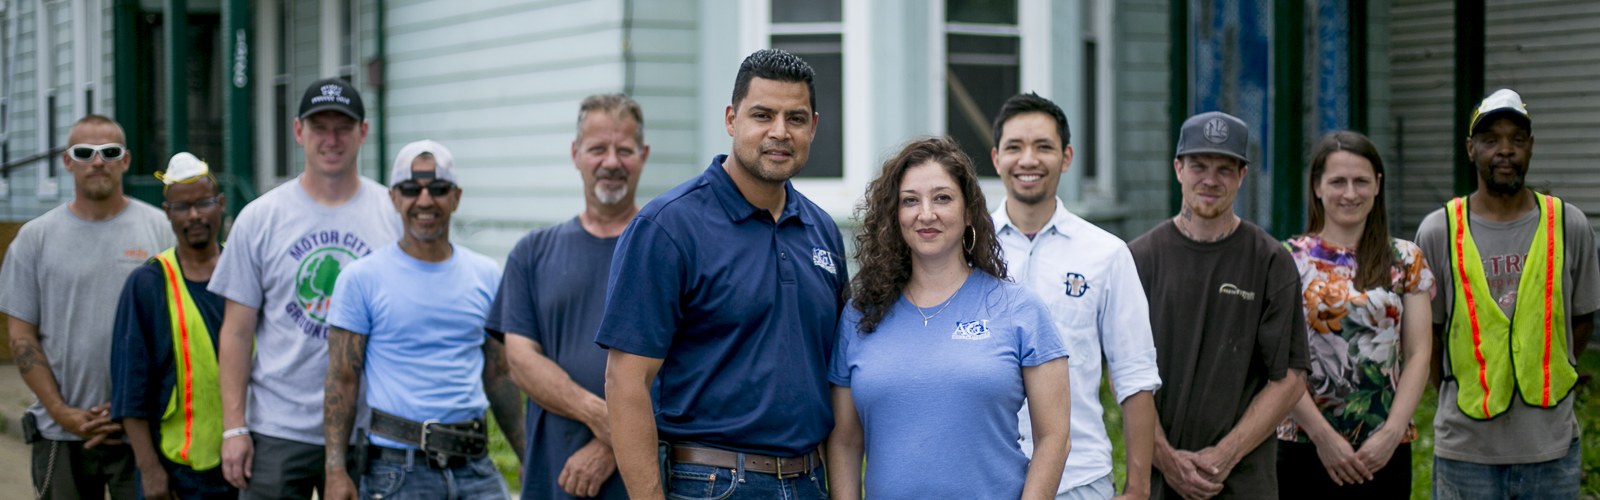 Luis Ali and Tanya Saldivar-Ali with the crew of AGI Construction, a southwest Detroit-based construction company <span class='image-credits'>Anthony Lanzilote</span>